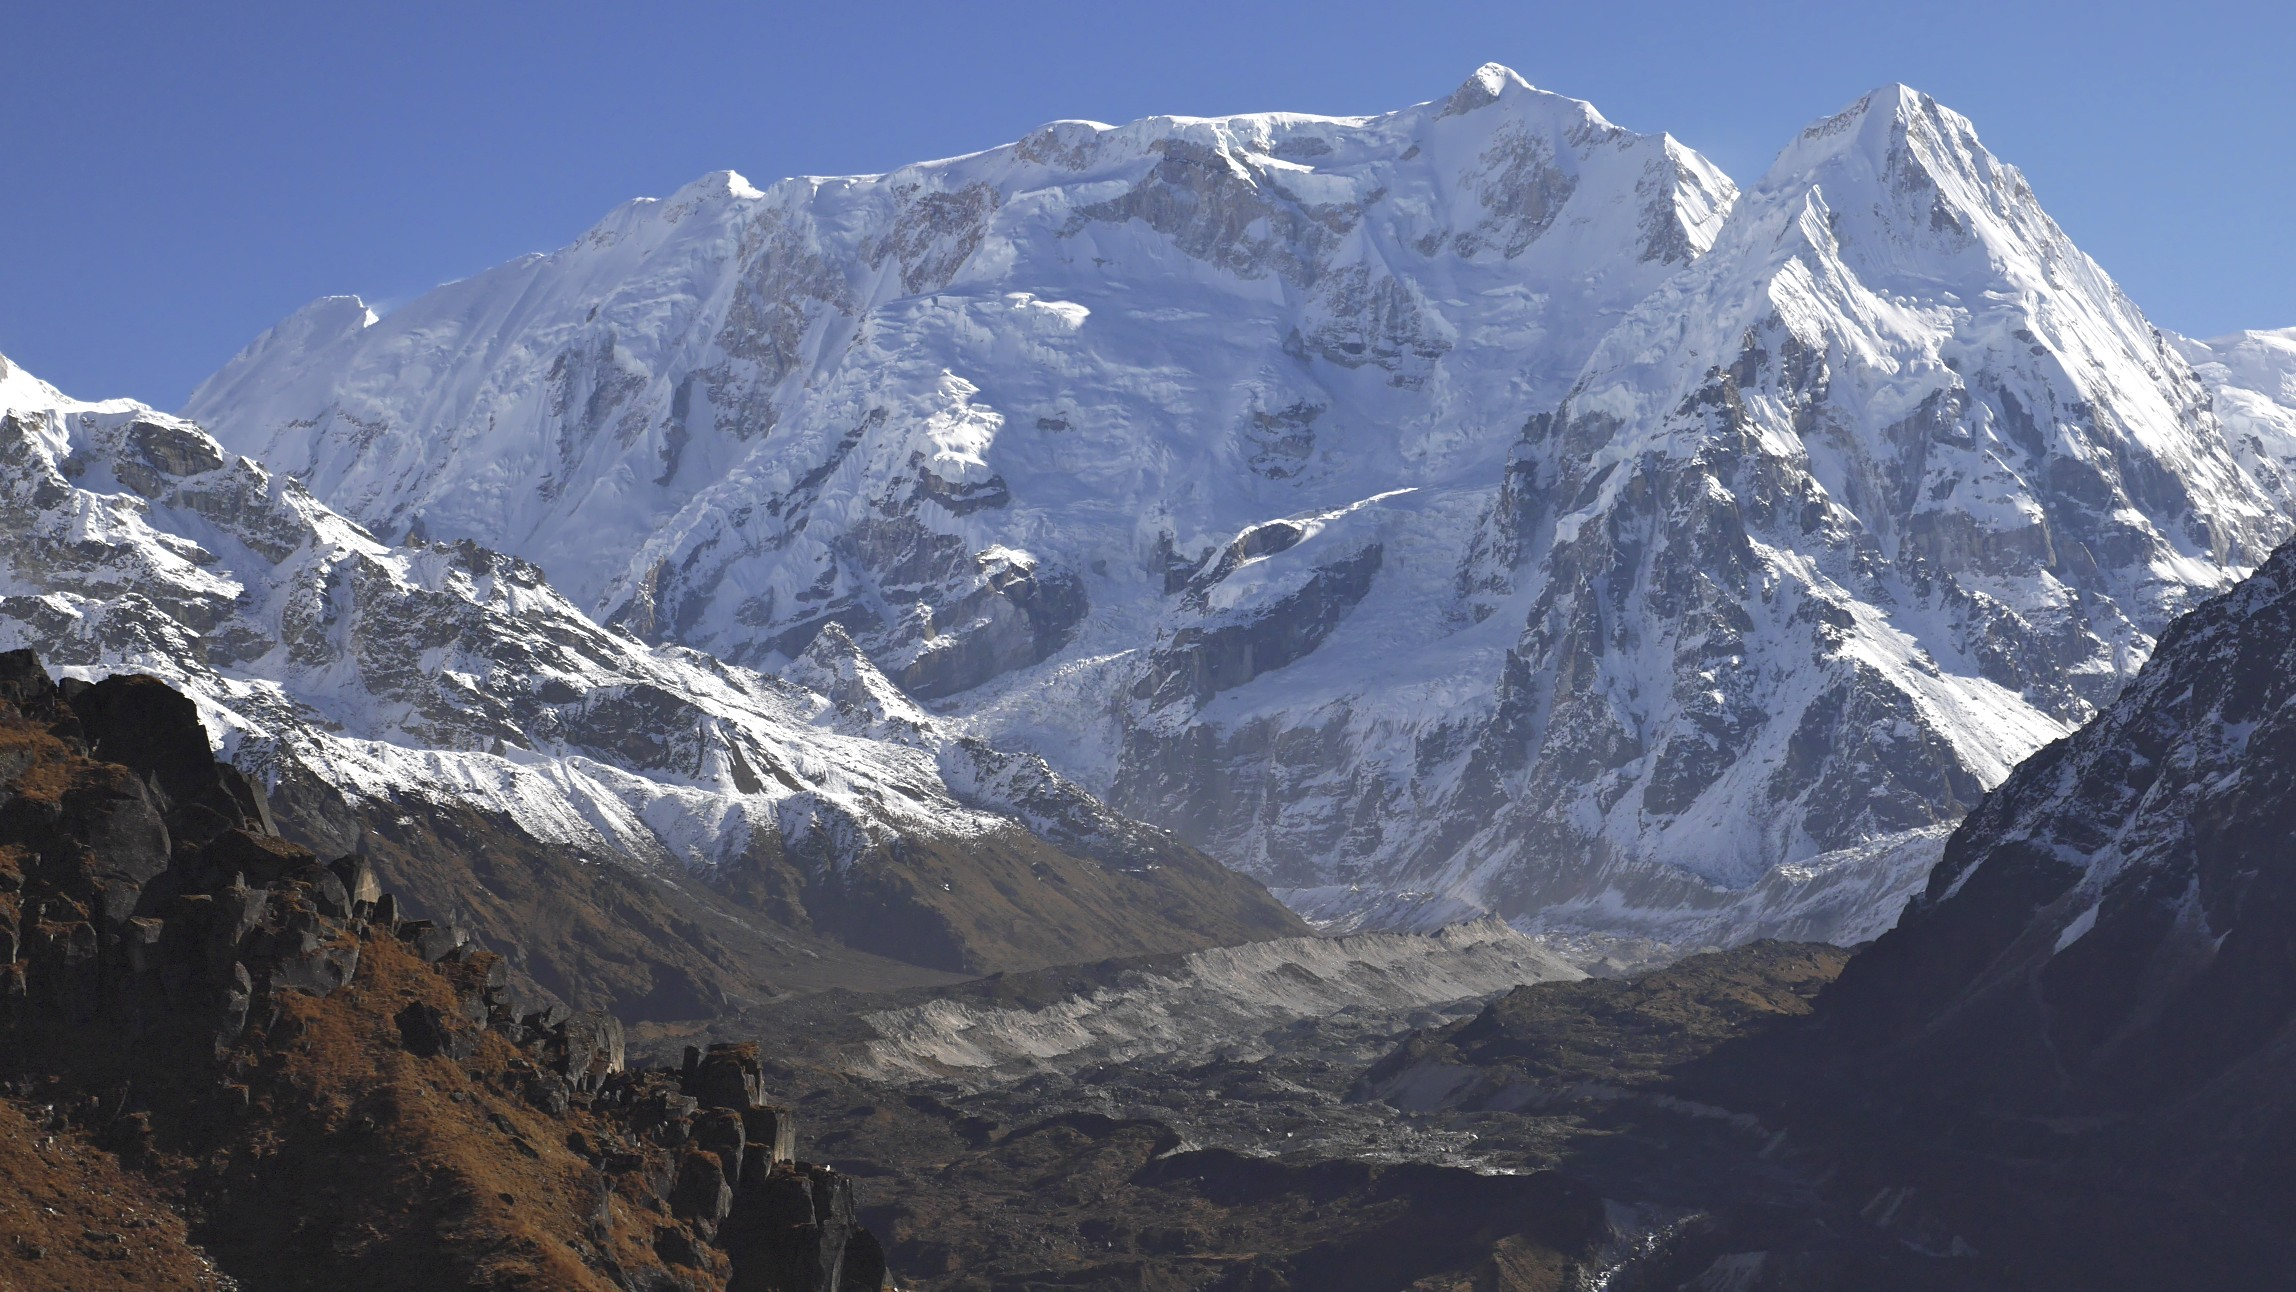 The view from the Sinjon La Pass connecting the south and north side of the Kangchendzonga trek. The long ridge is Kabru North (left) 7,338m and Kabru South 7,311m. The peak on the right is Ratong 6,679m.